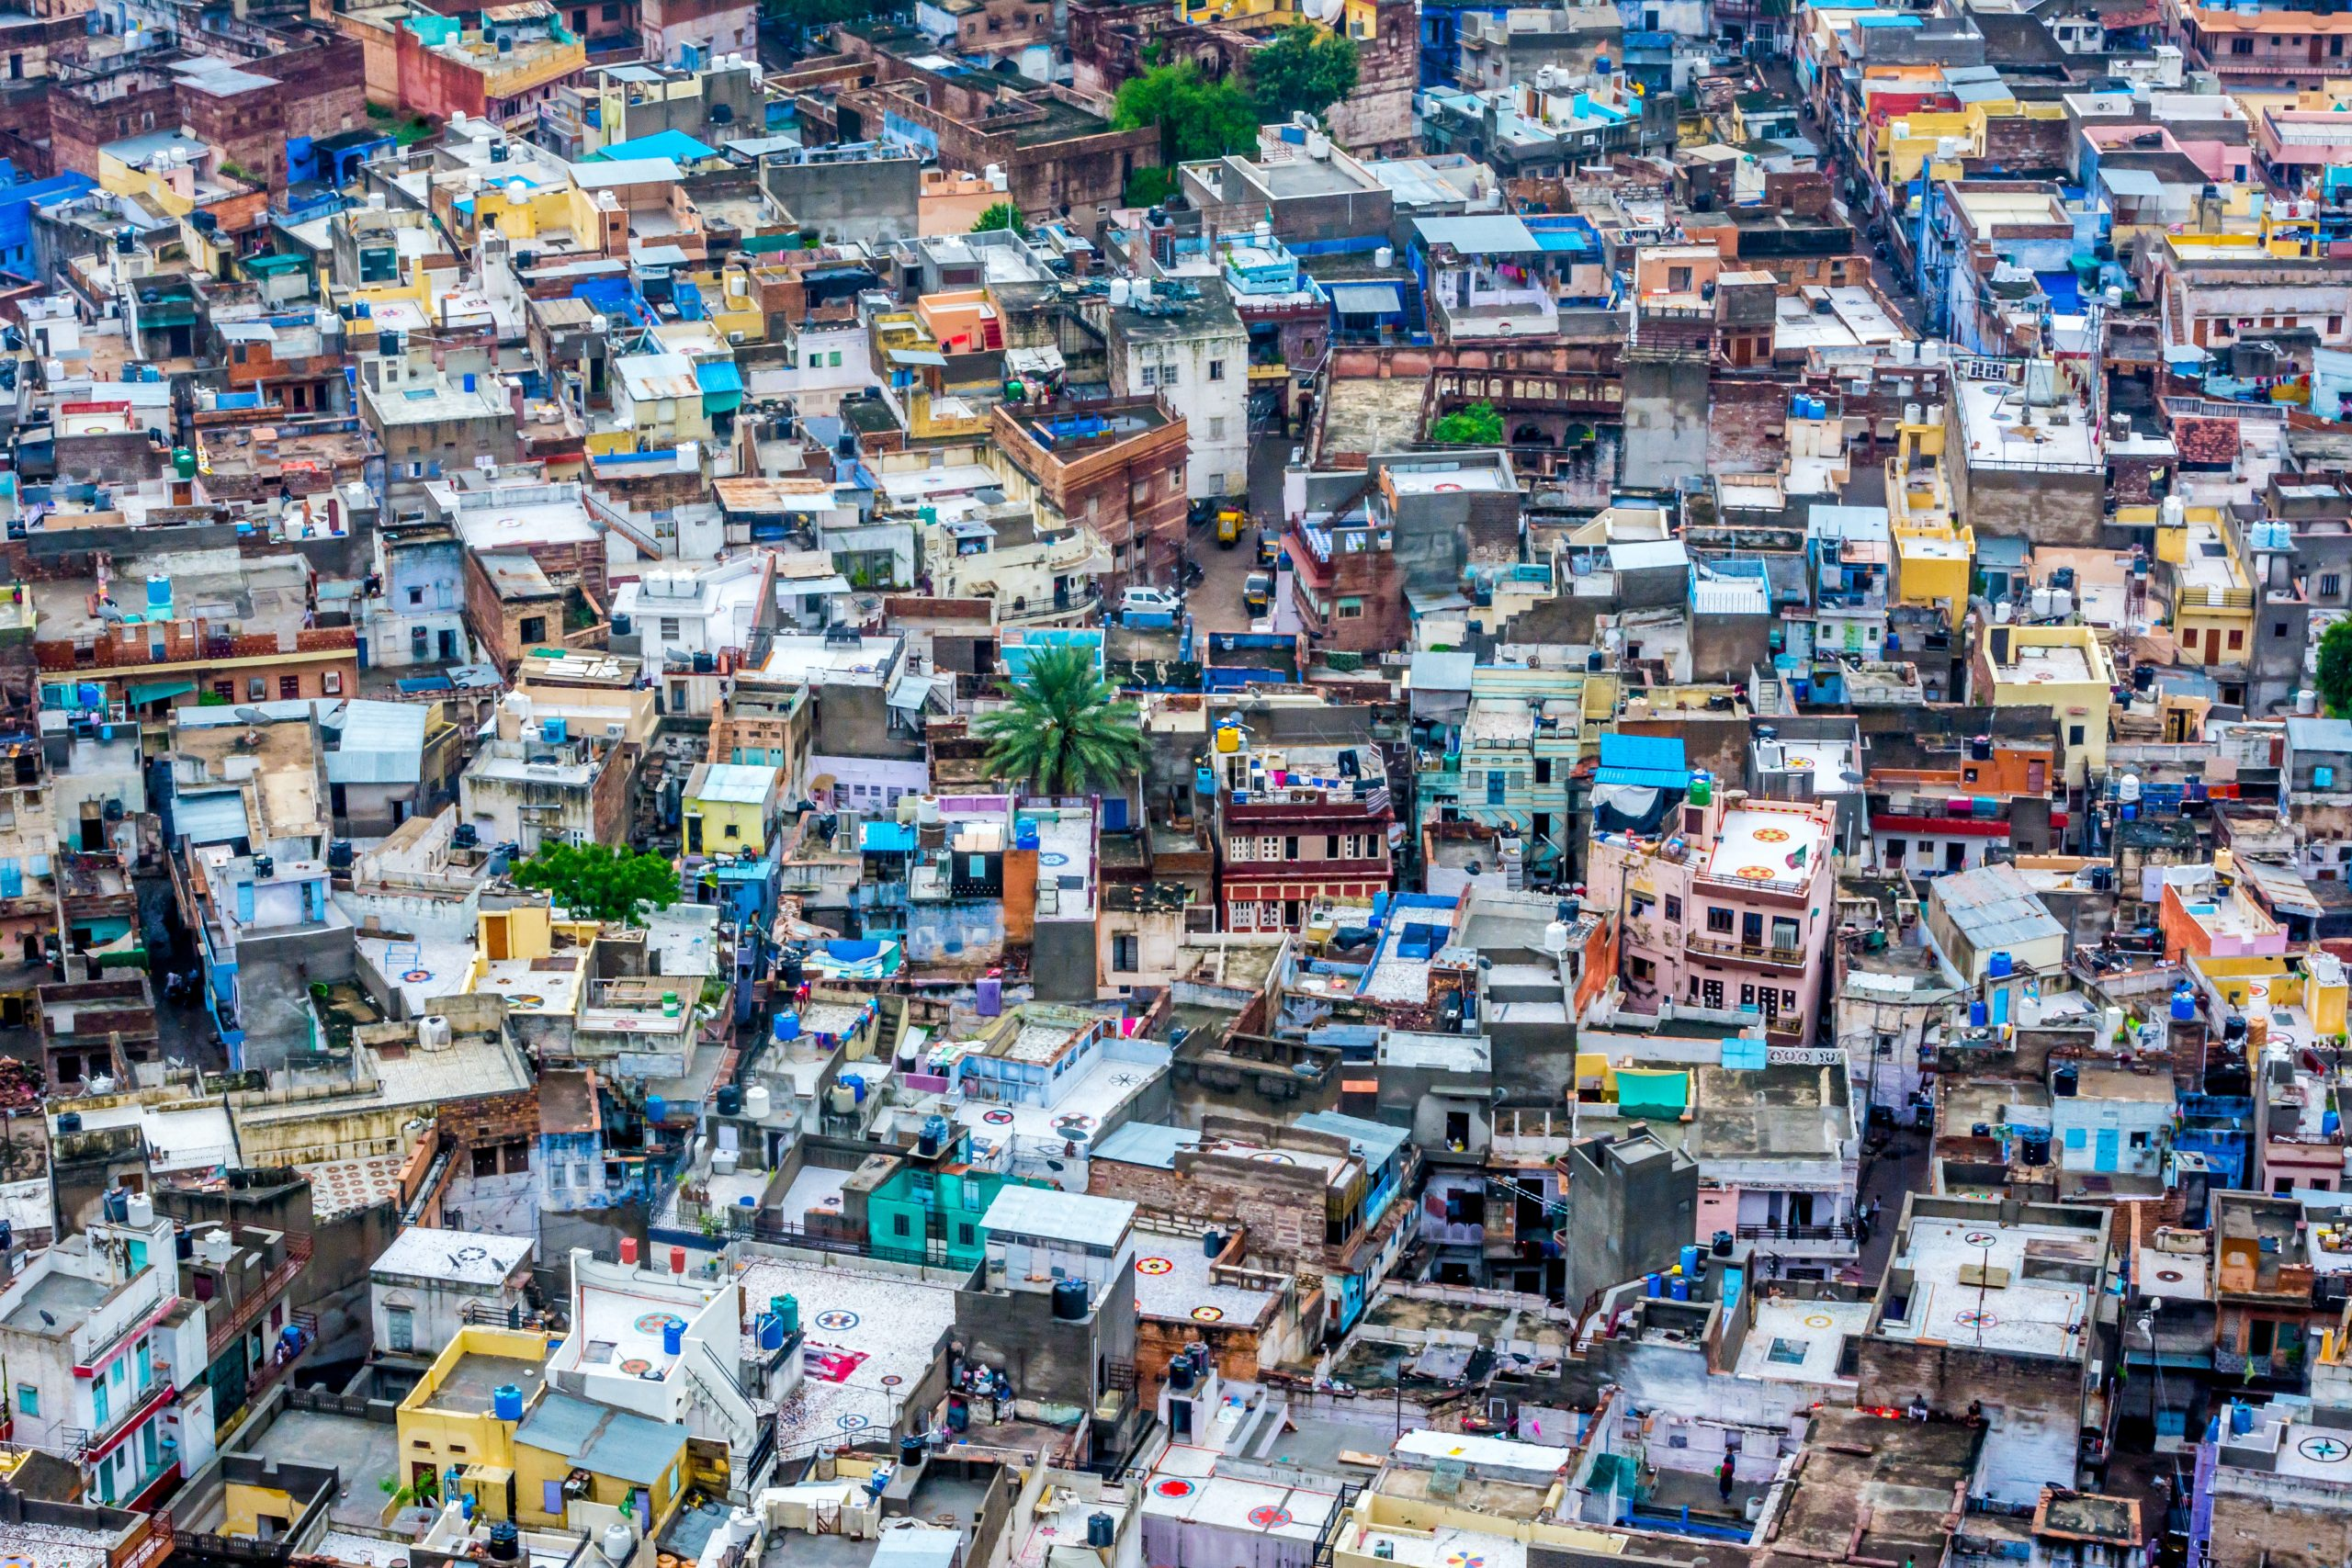 God's Grace To Those Living On The Streets In India